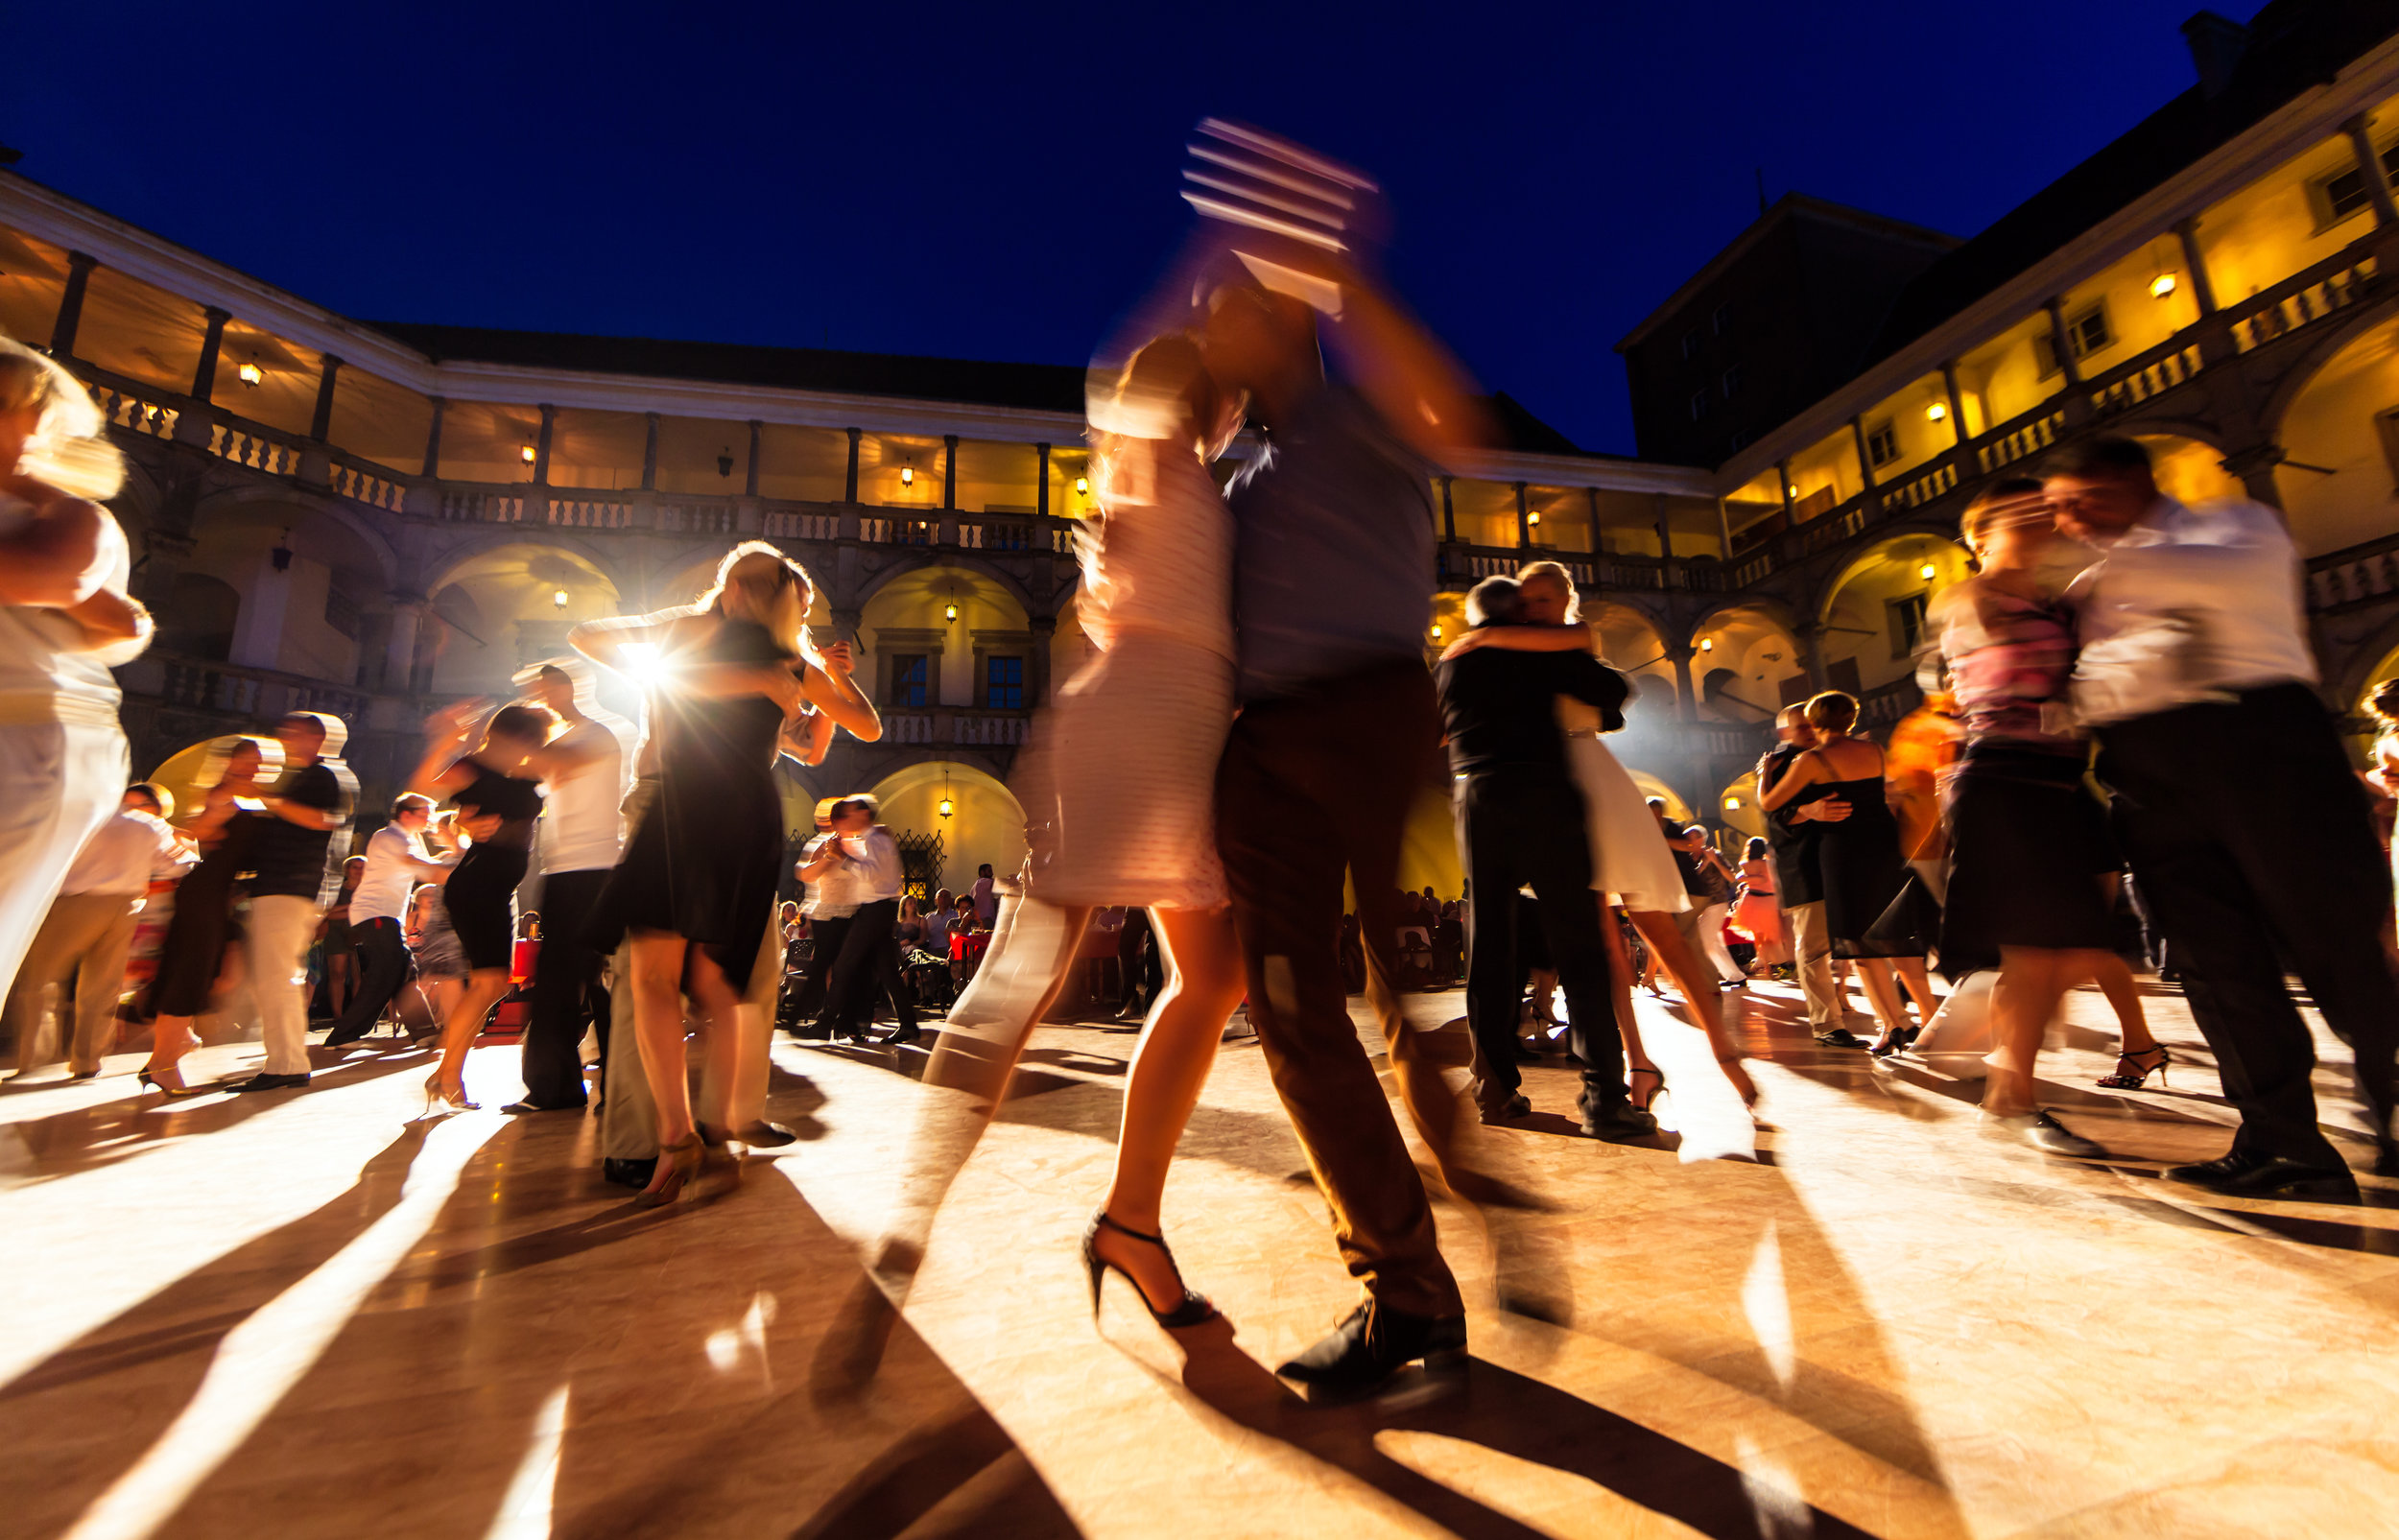 Every Tuesday 9:30pm to 1:30am    Join us for tango dancing every Tuesday 2 DJ's and 2 Salons Trad. & Alt.   Excellent DJ's every week and Performance at 11pm  Plus Occasionally live music  Complementary - Snacks, coffee, tea and raffles  Your host Jon Tariq.   For more Info:   www.tangoschool.nyc